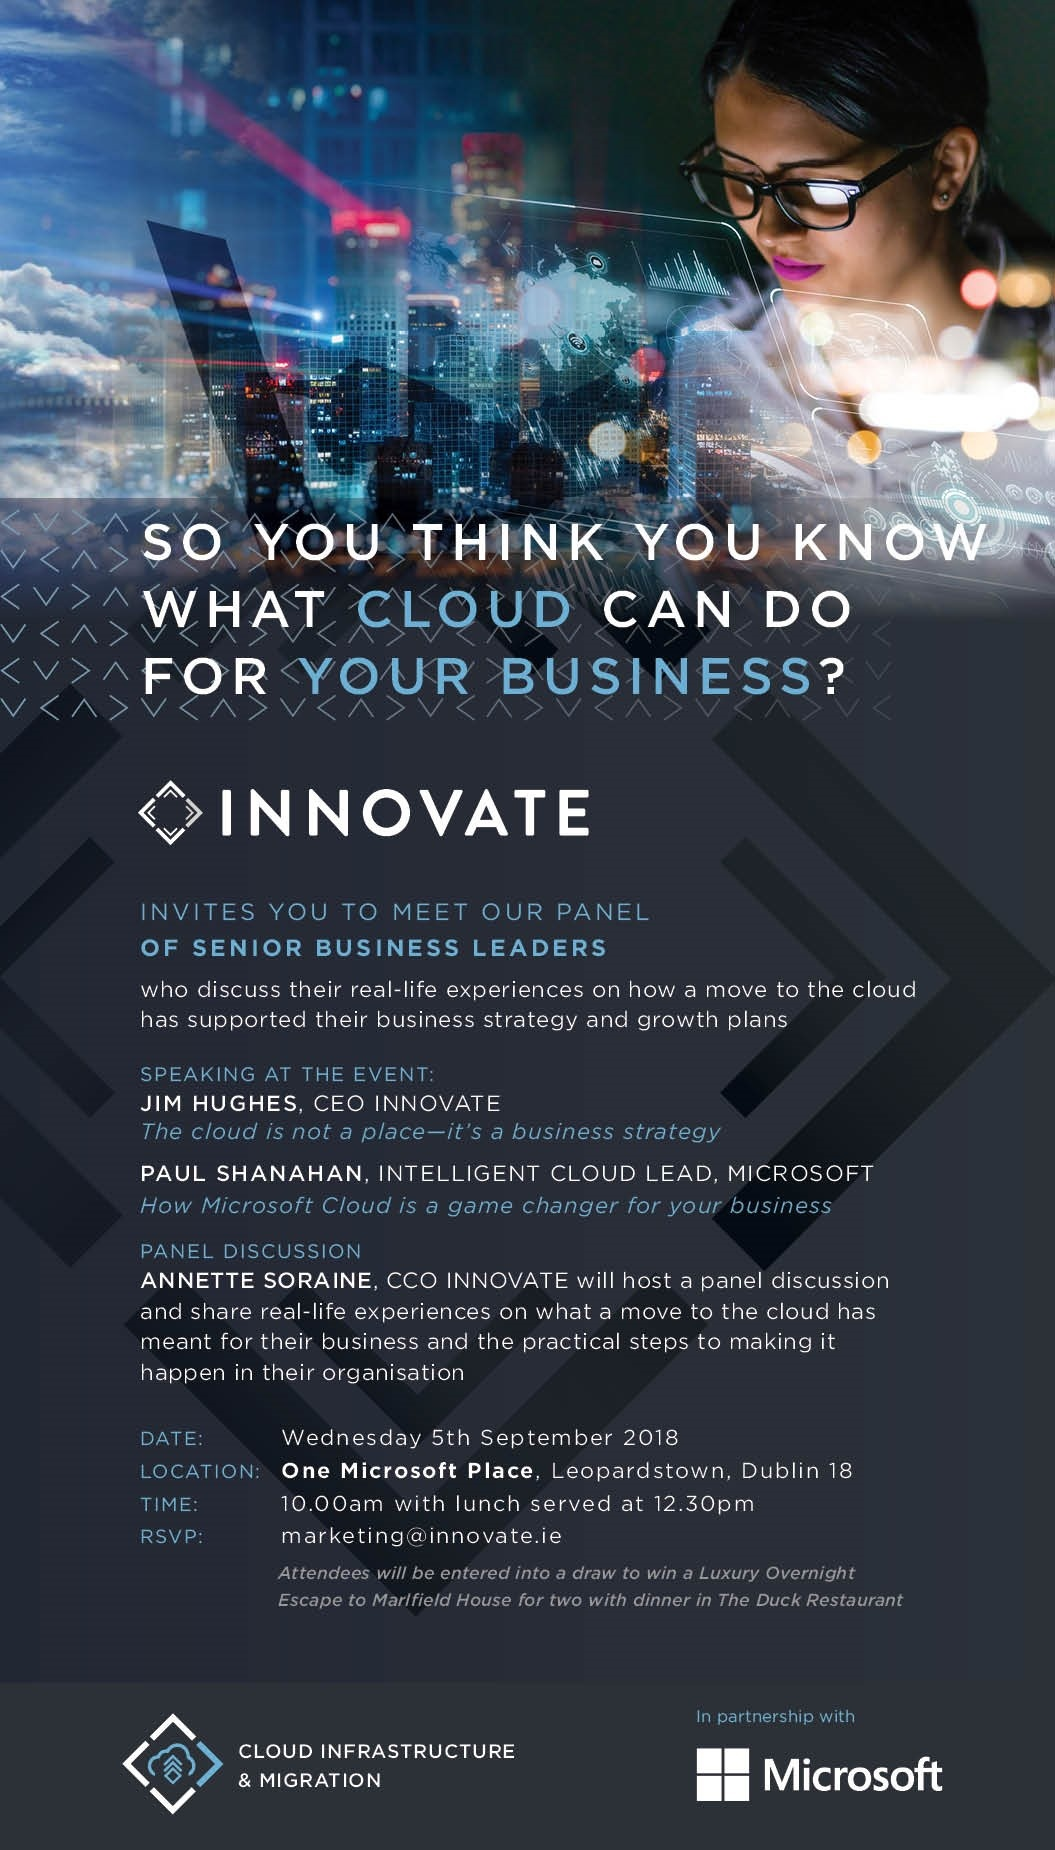 INNOVATE Cloud Strategy Briefing Invitation Image.jpg